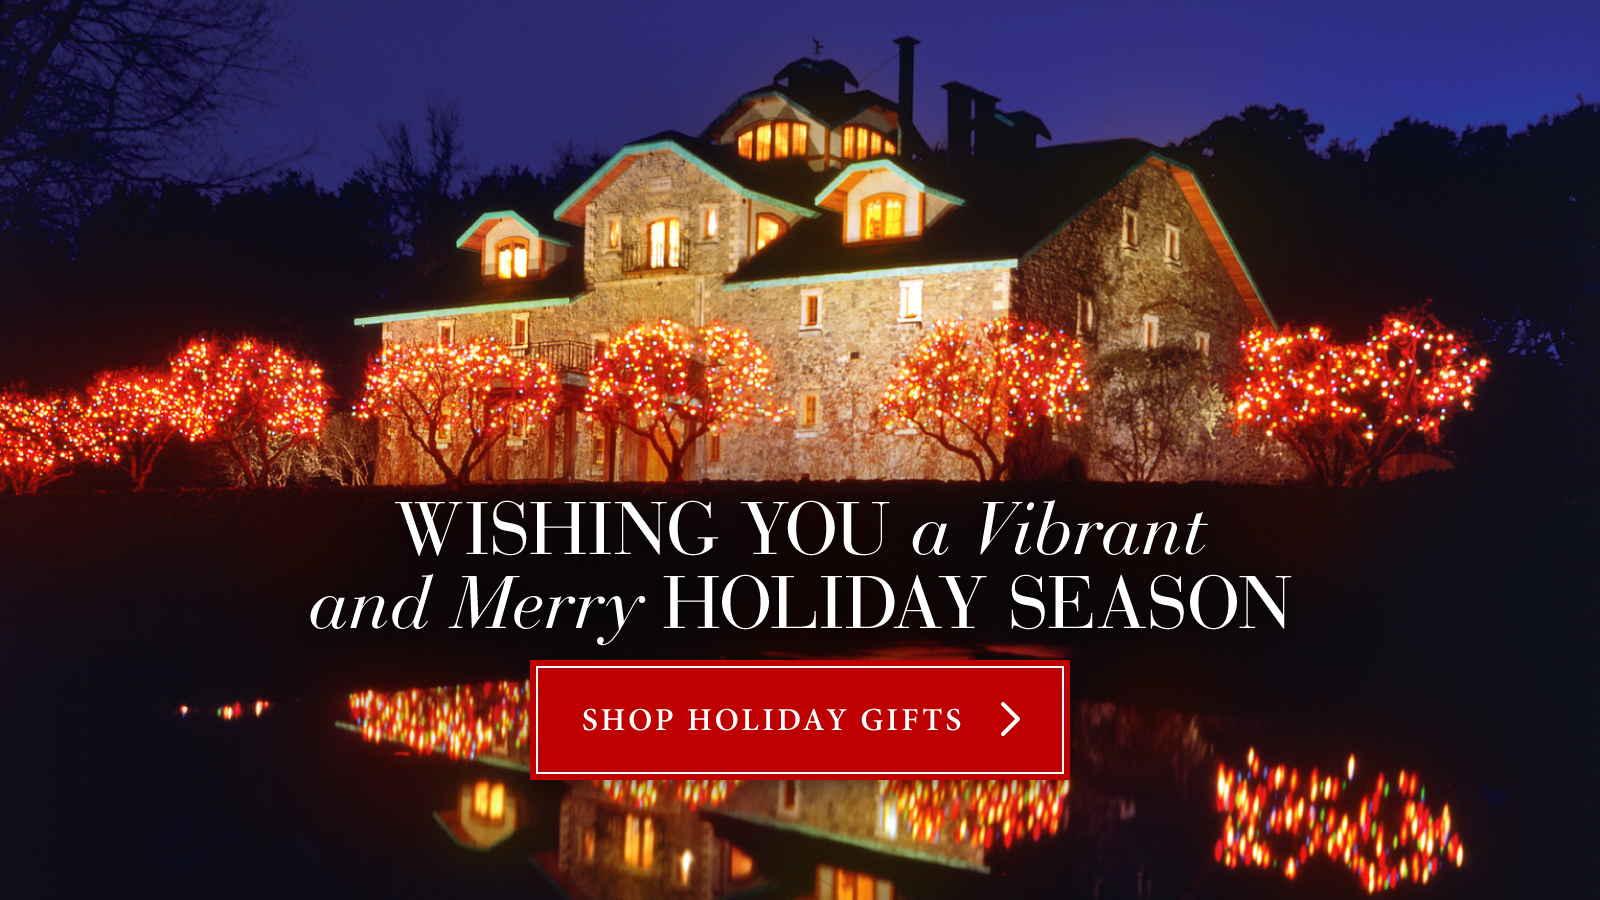 Wishing You a Vibrant and Merry Holiday Season